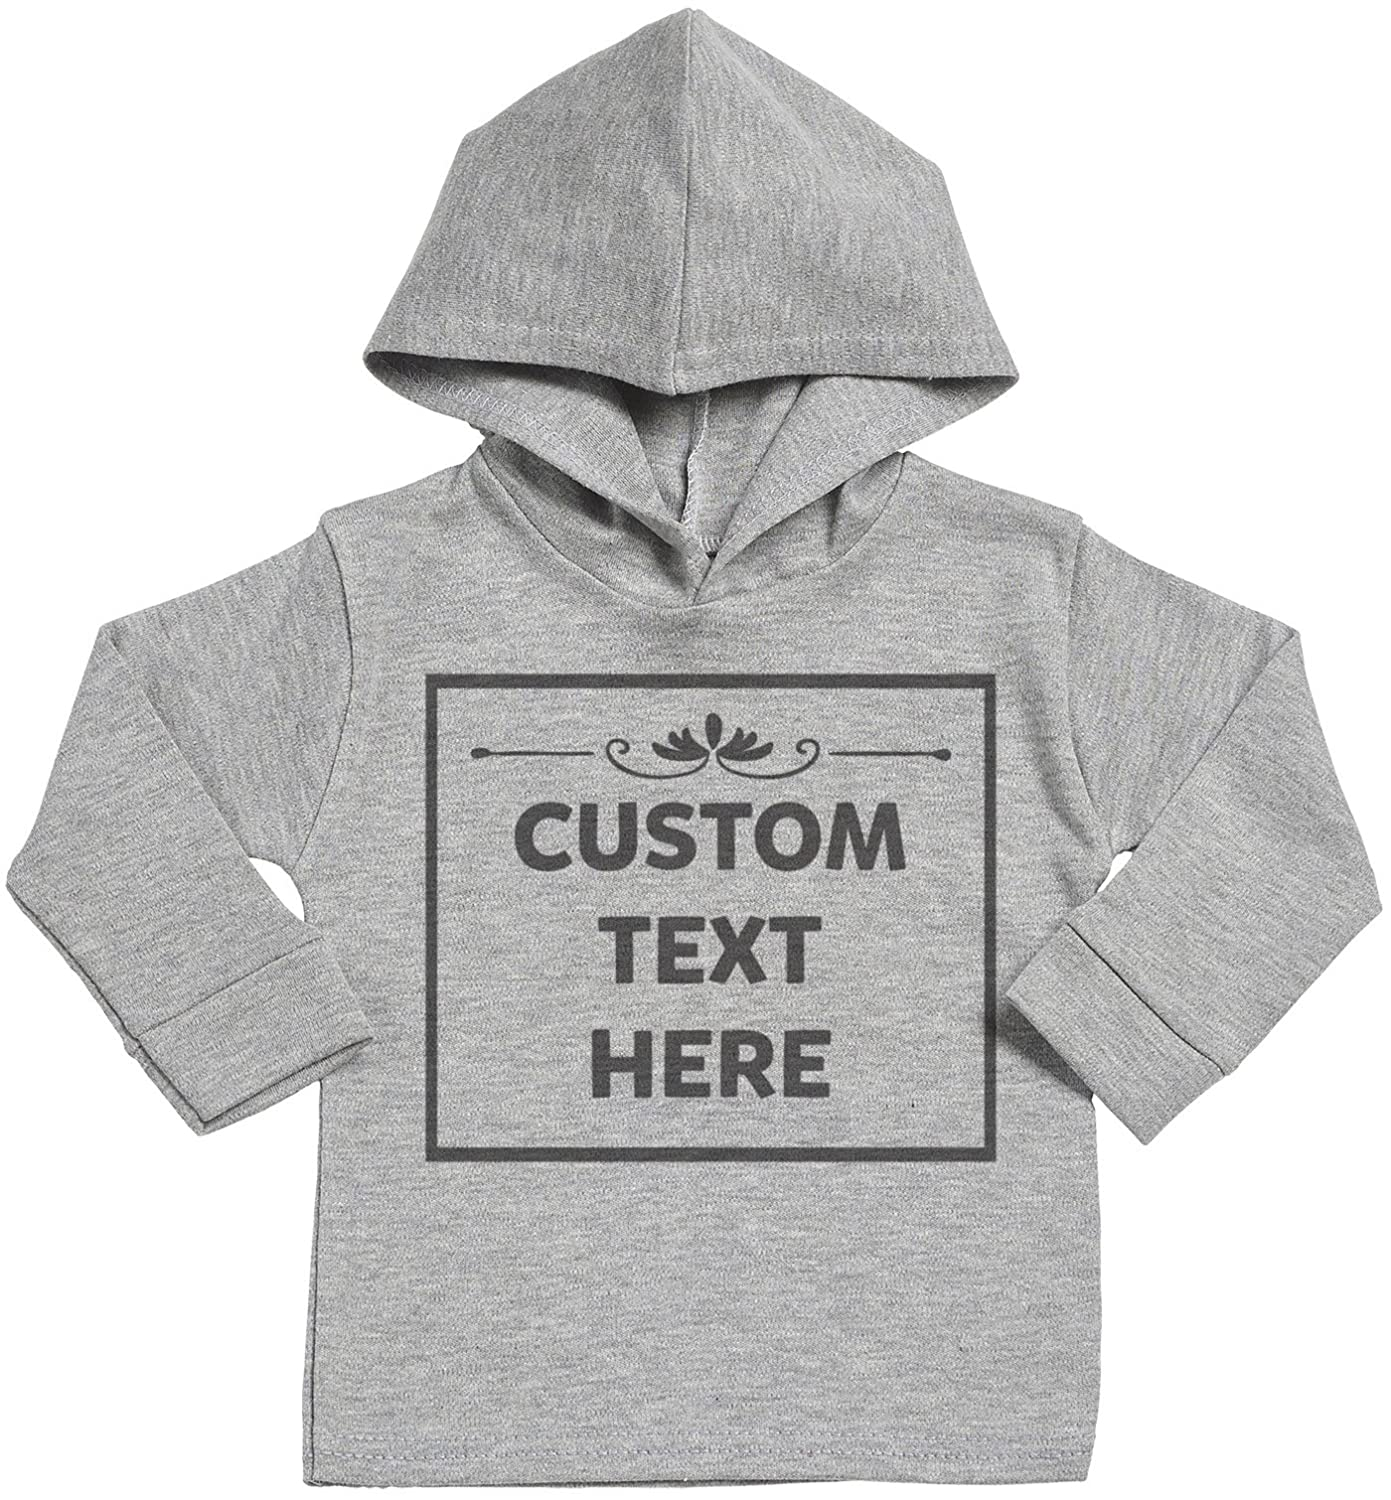 Spoilt Rotten SR - Personalised Custom Text Here Baby Cotton Baby Hoodie - Personalised Baby Gift - Personalised Baby Clothing srP60_H